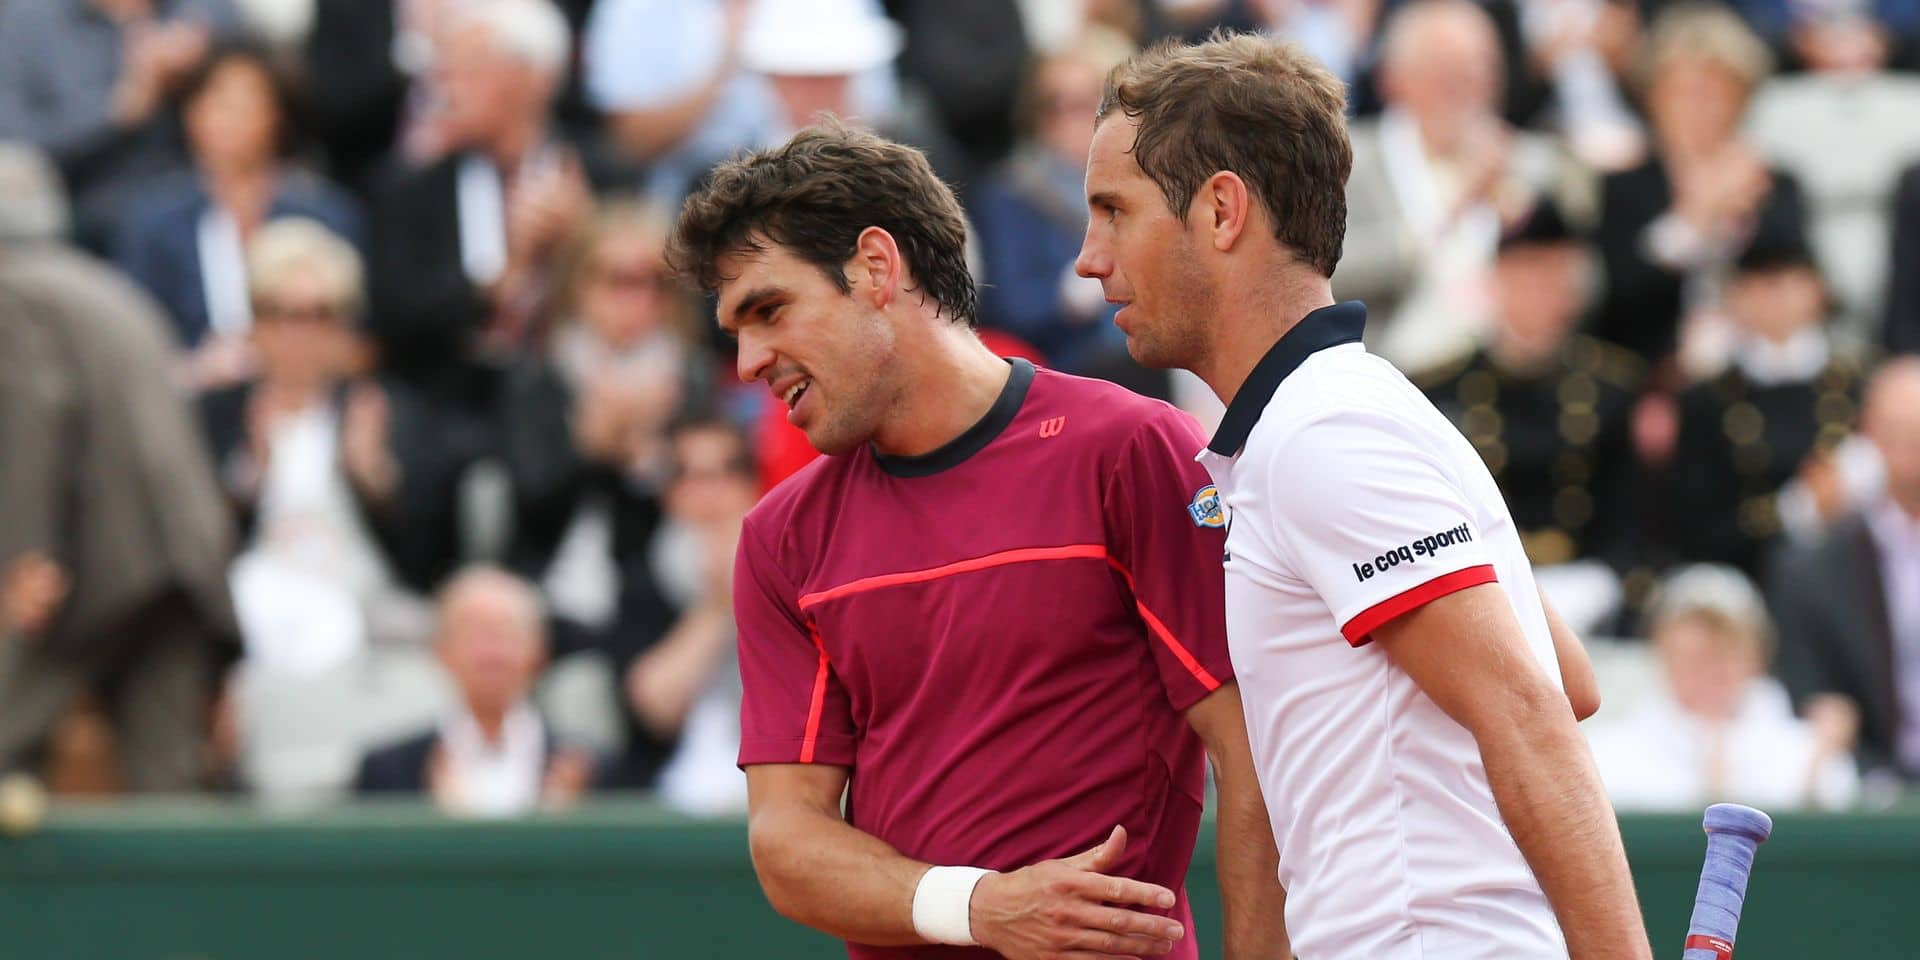 20150526 - PARIS, FRANCE: Belgian Germain Gigounon and French Richard Gasquet shake hands at the end of the first round game of the men's singles tournament at the Roland Garros tennis tournament, between Belgian Germain Gigounon and French Richard Gasquet, in Paris, France, Tuesday 26 May 2015. Roland Garros Grand Slam takes place from 24 May to 07 June 2015. BELGA PHOTO VIRGINIE LEFOUR